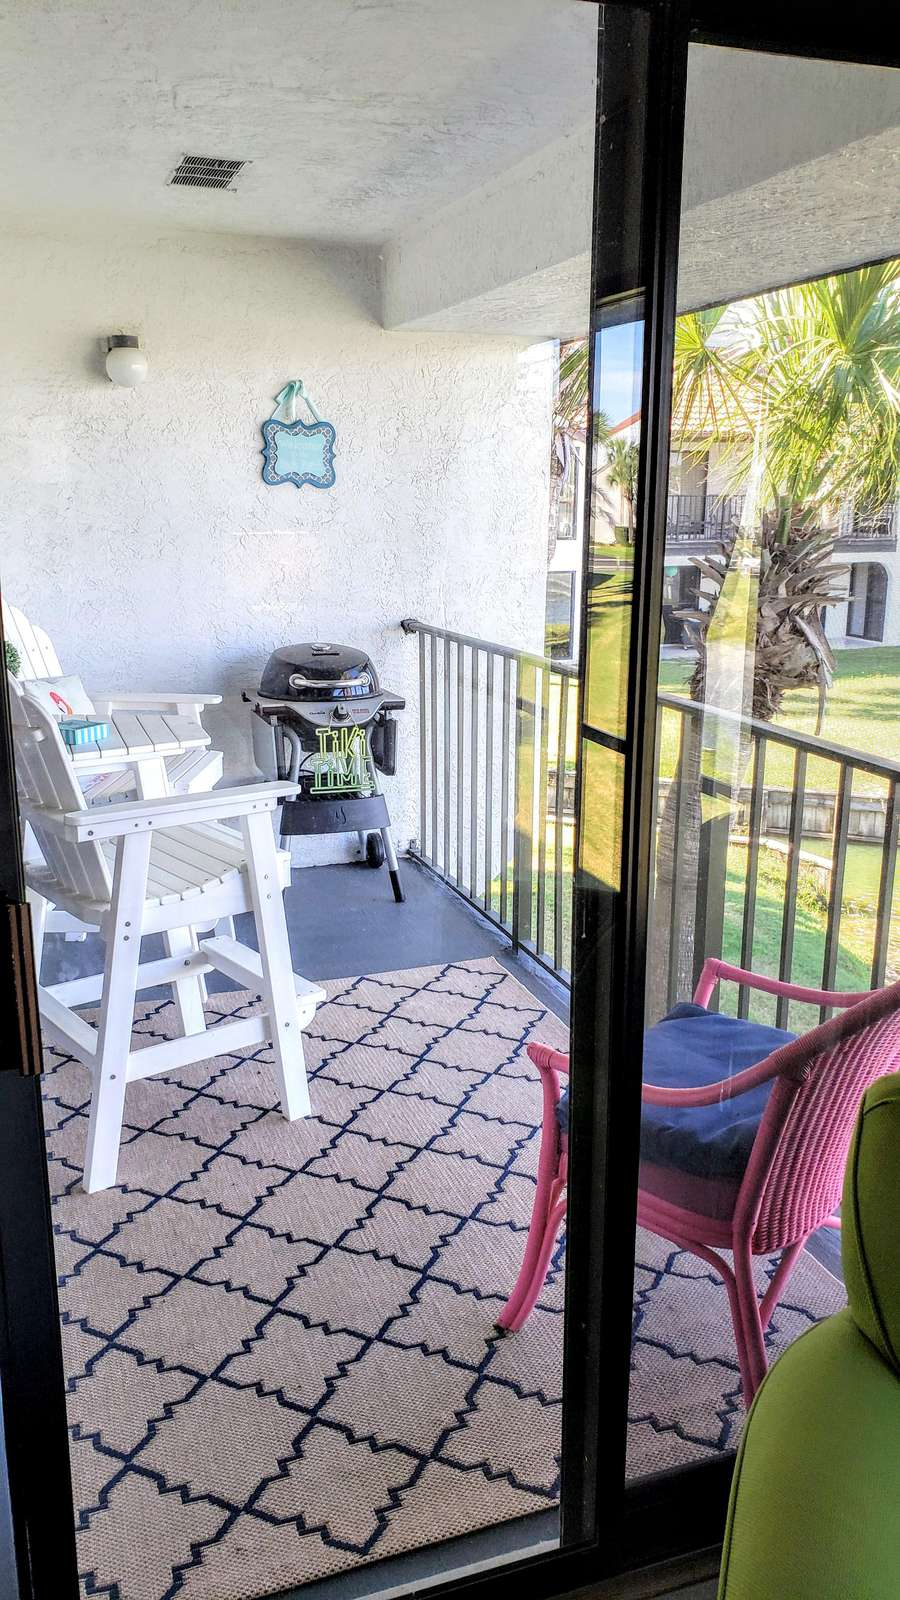 Cozy balcony with grill to relax to the sights and sounds of the fountain/lake